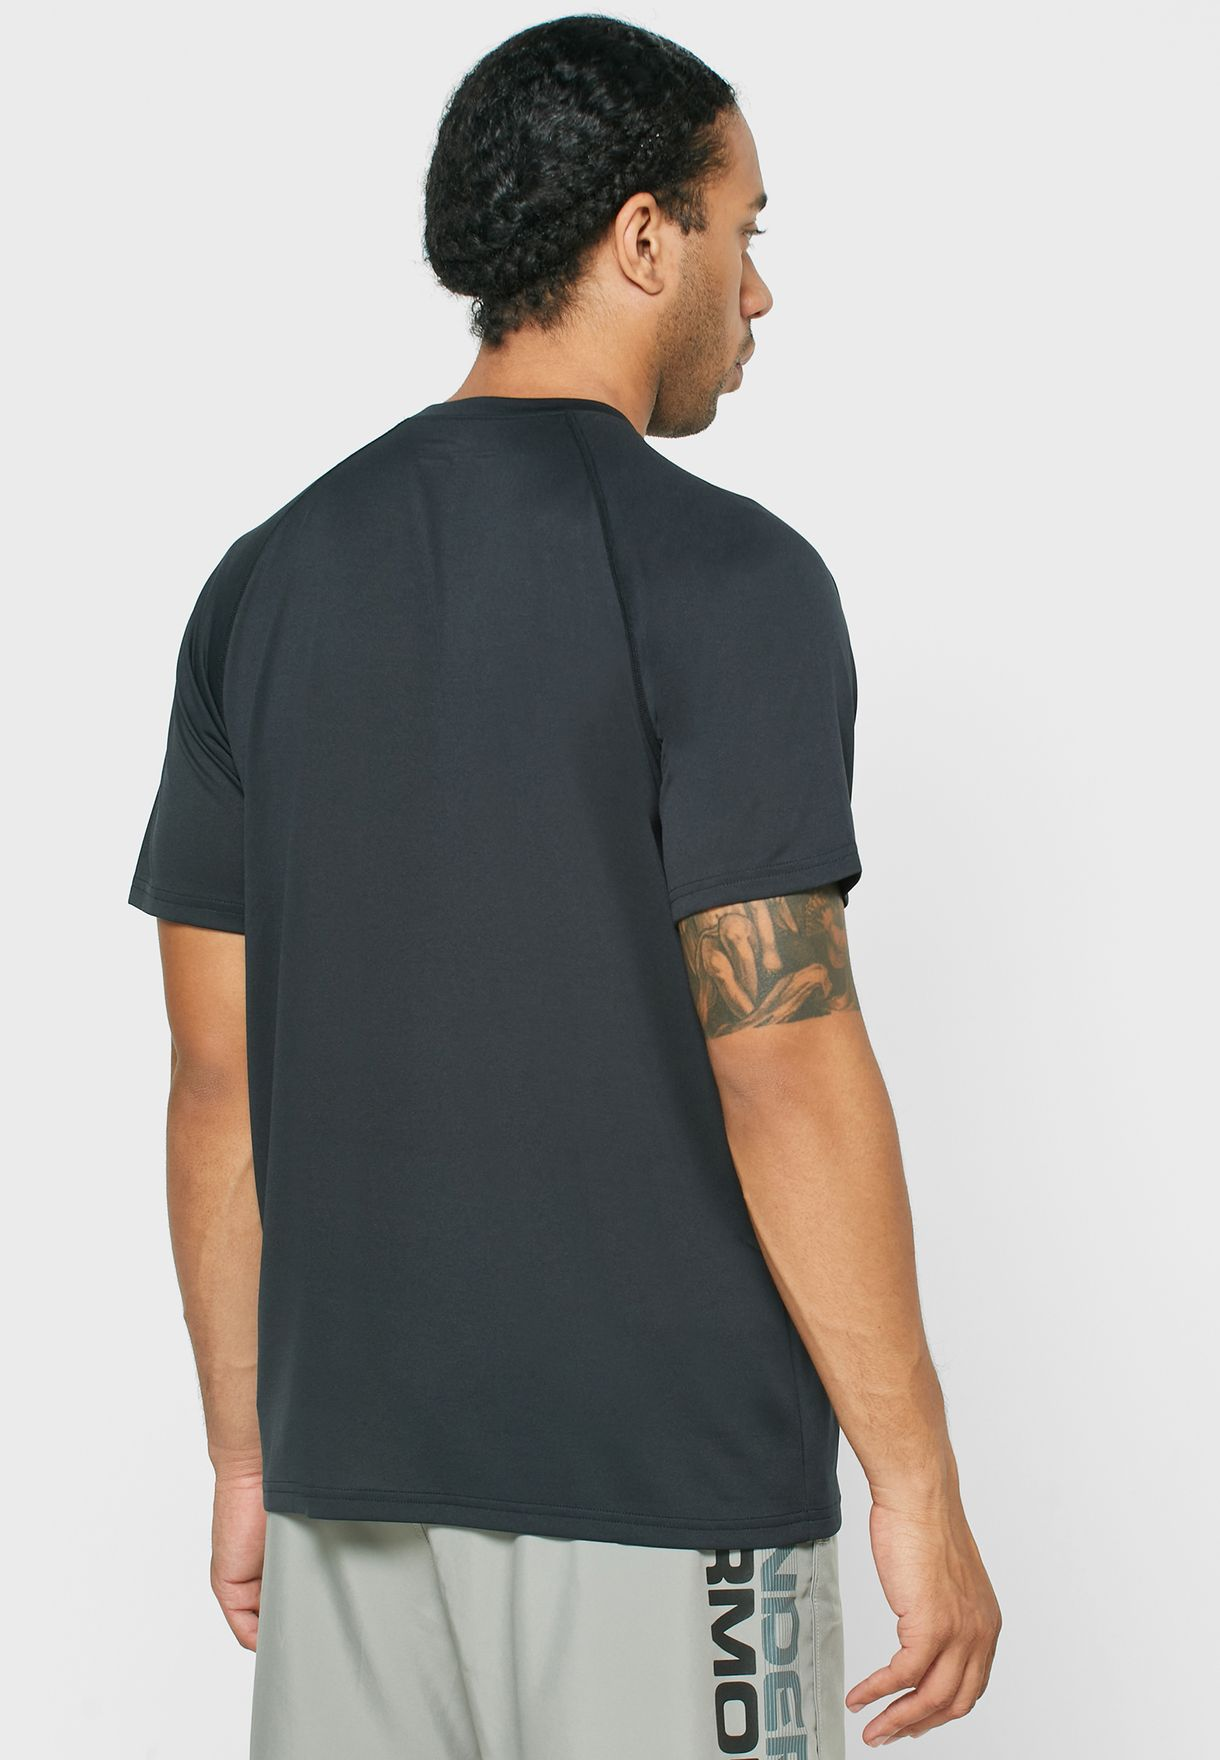 Tech Tactical T-Shirt